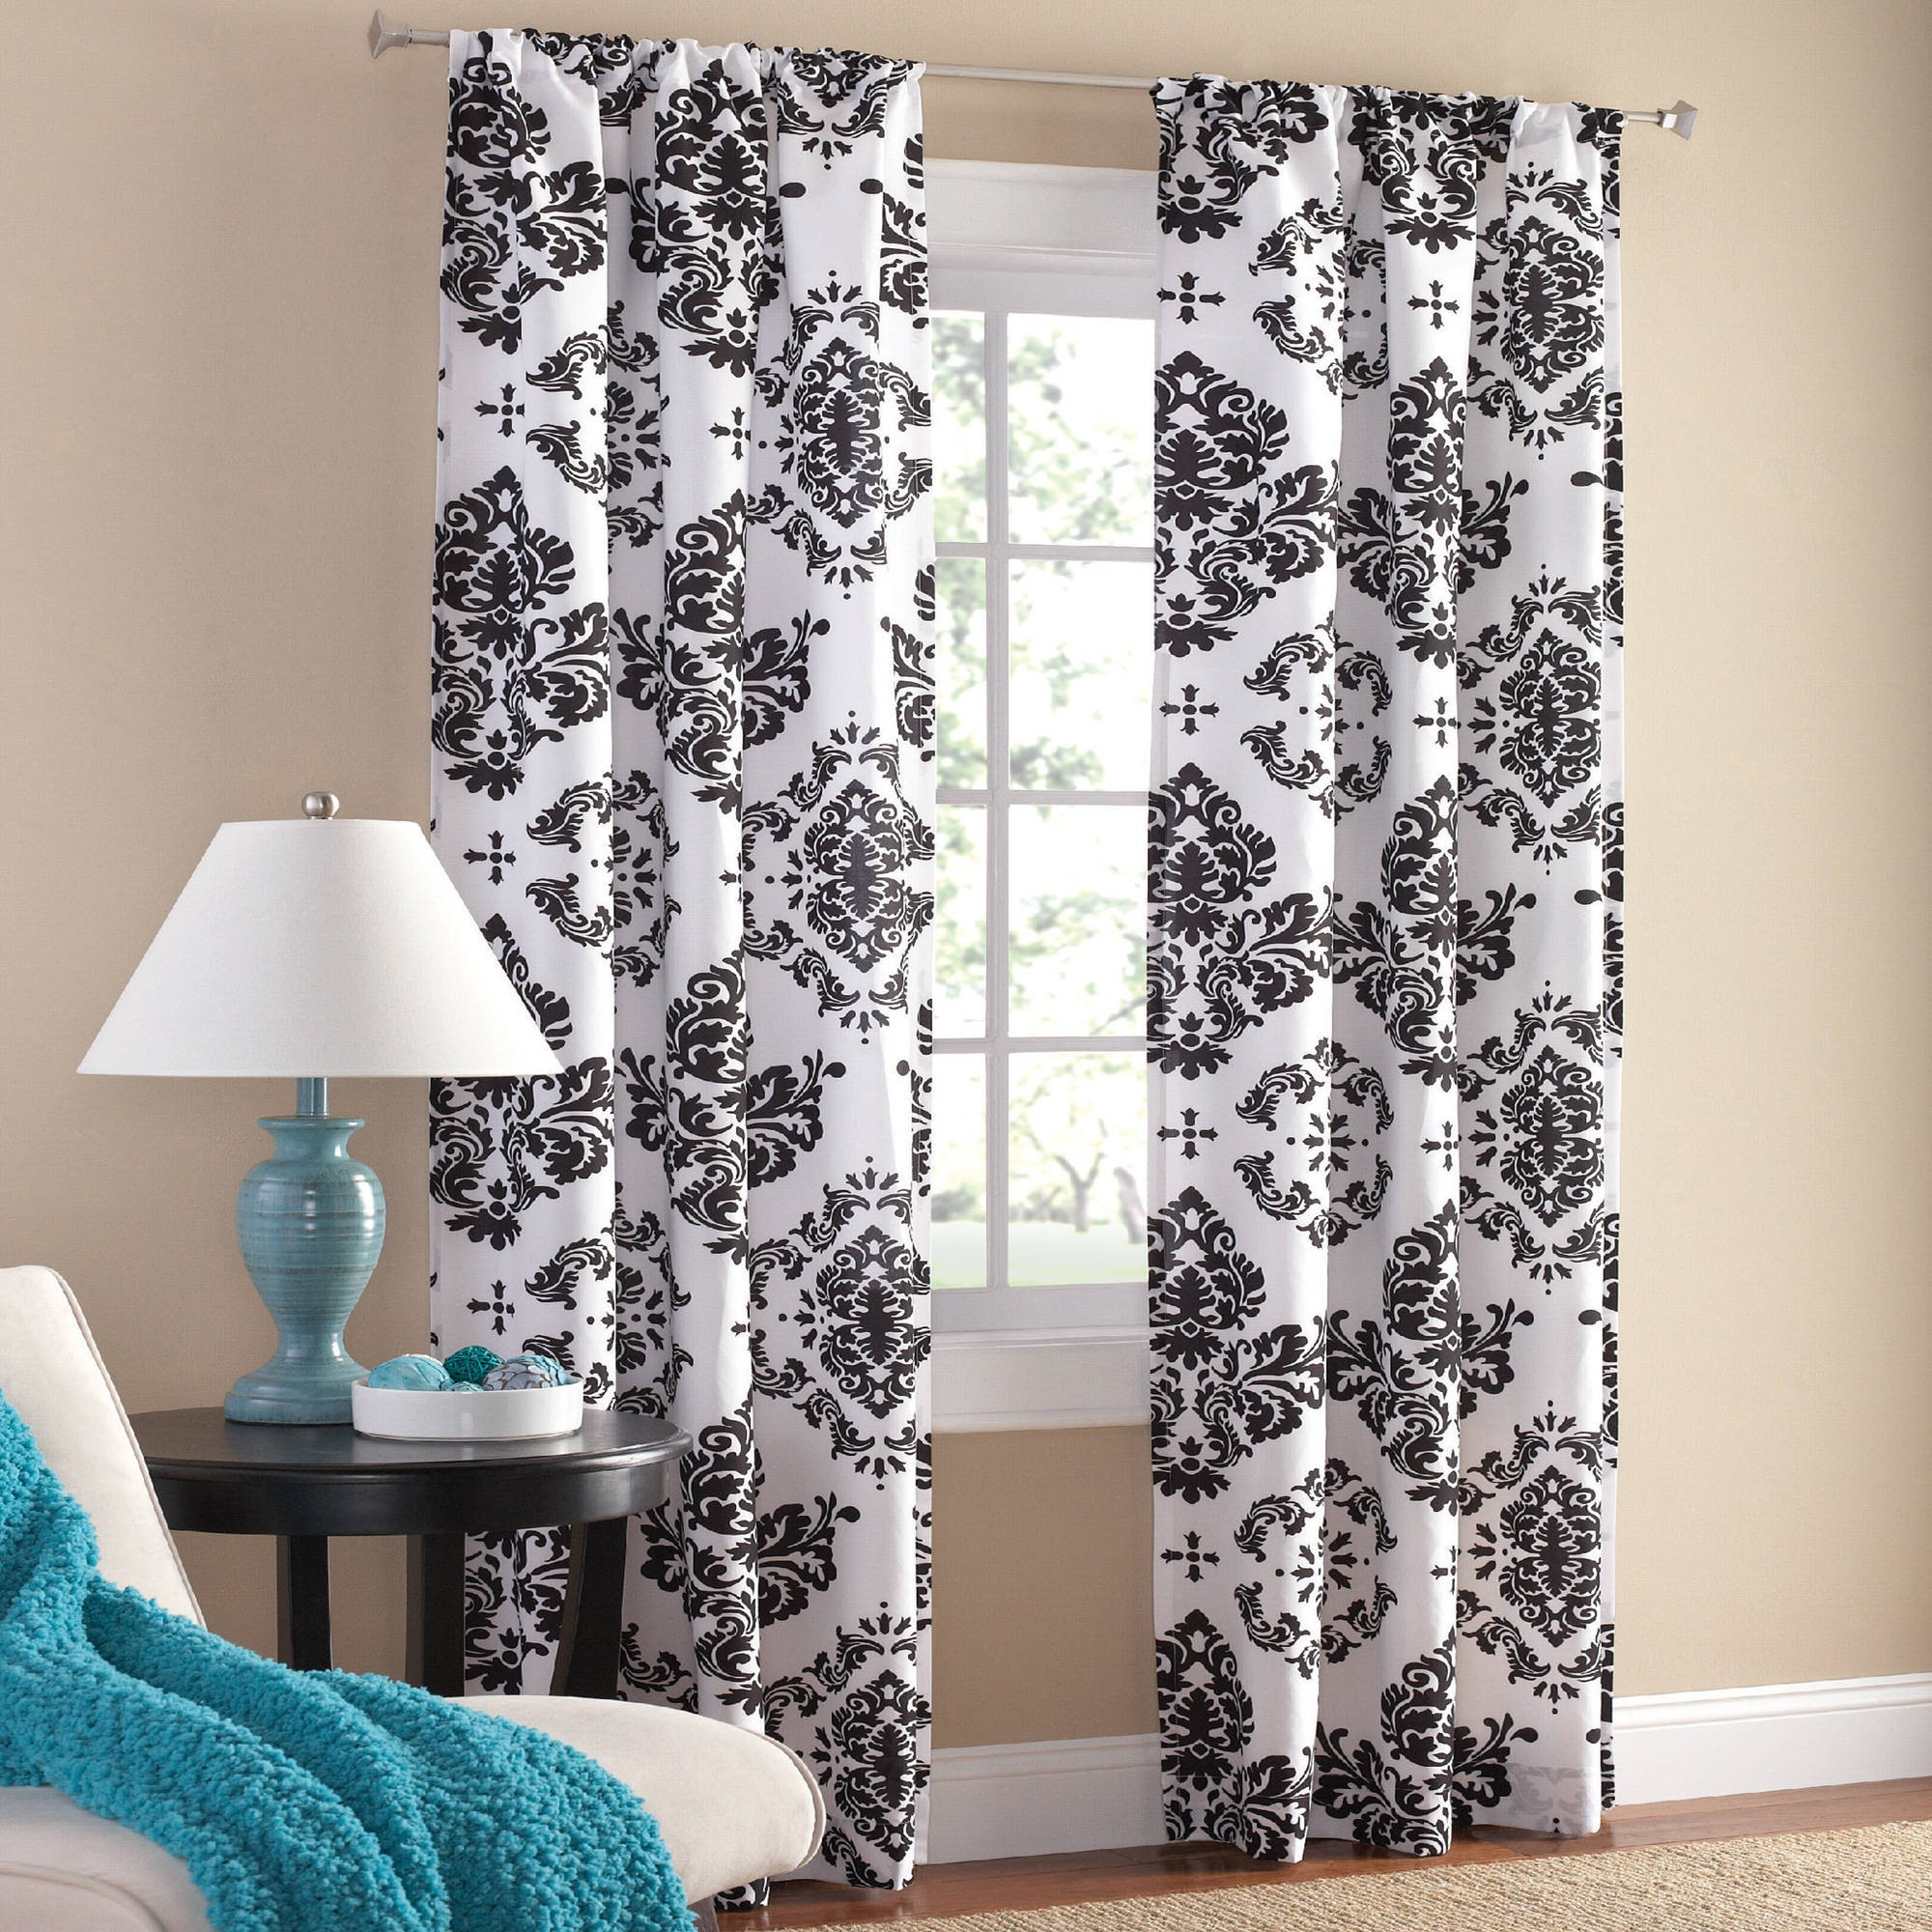 Mainstays Classic Noir Polyester Curtain Panel, Set Of 2